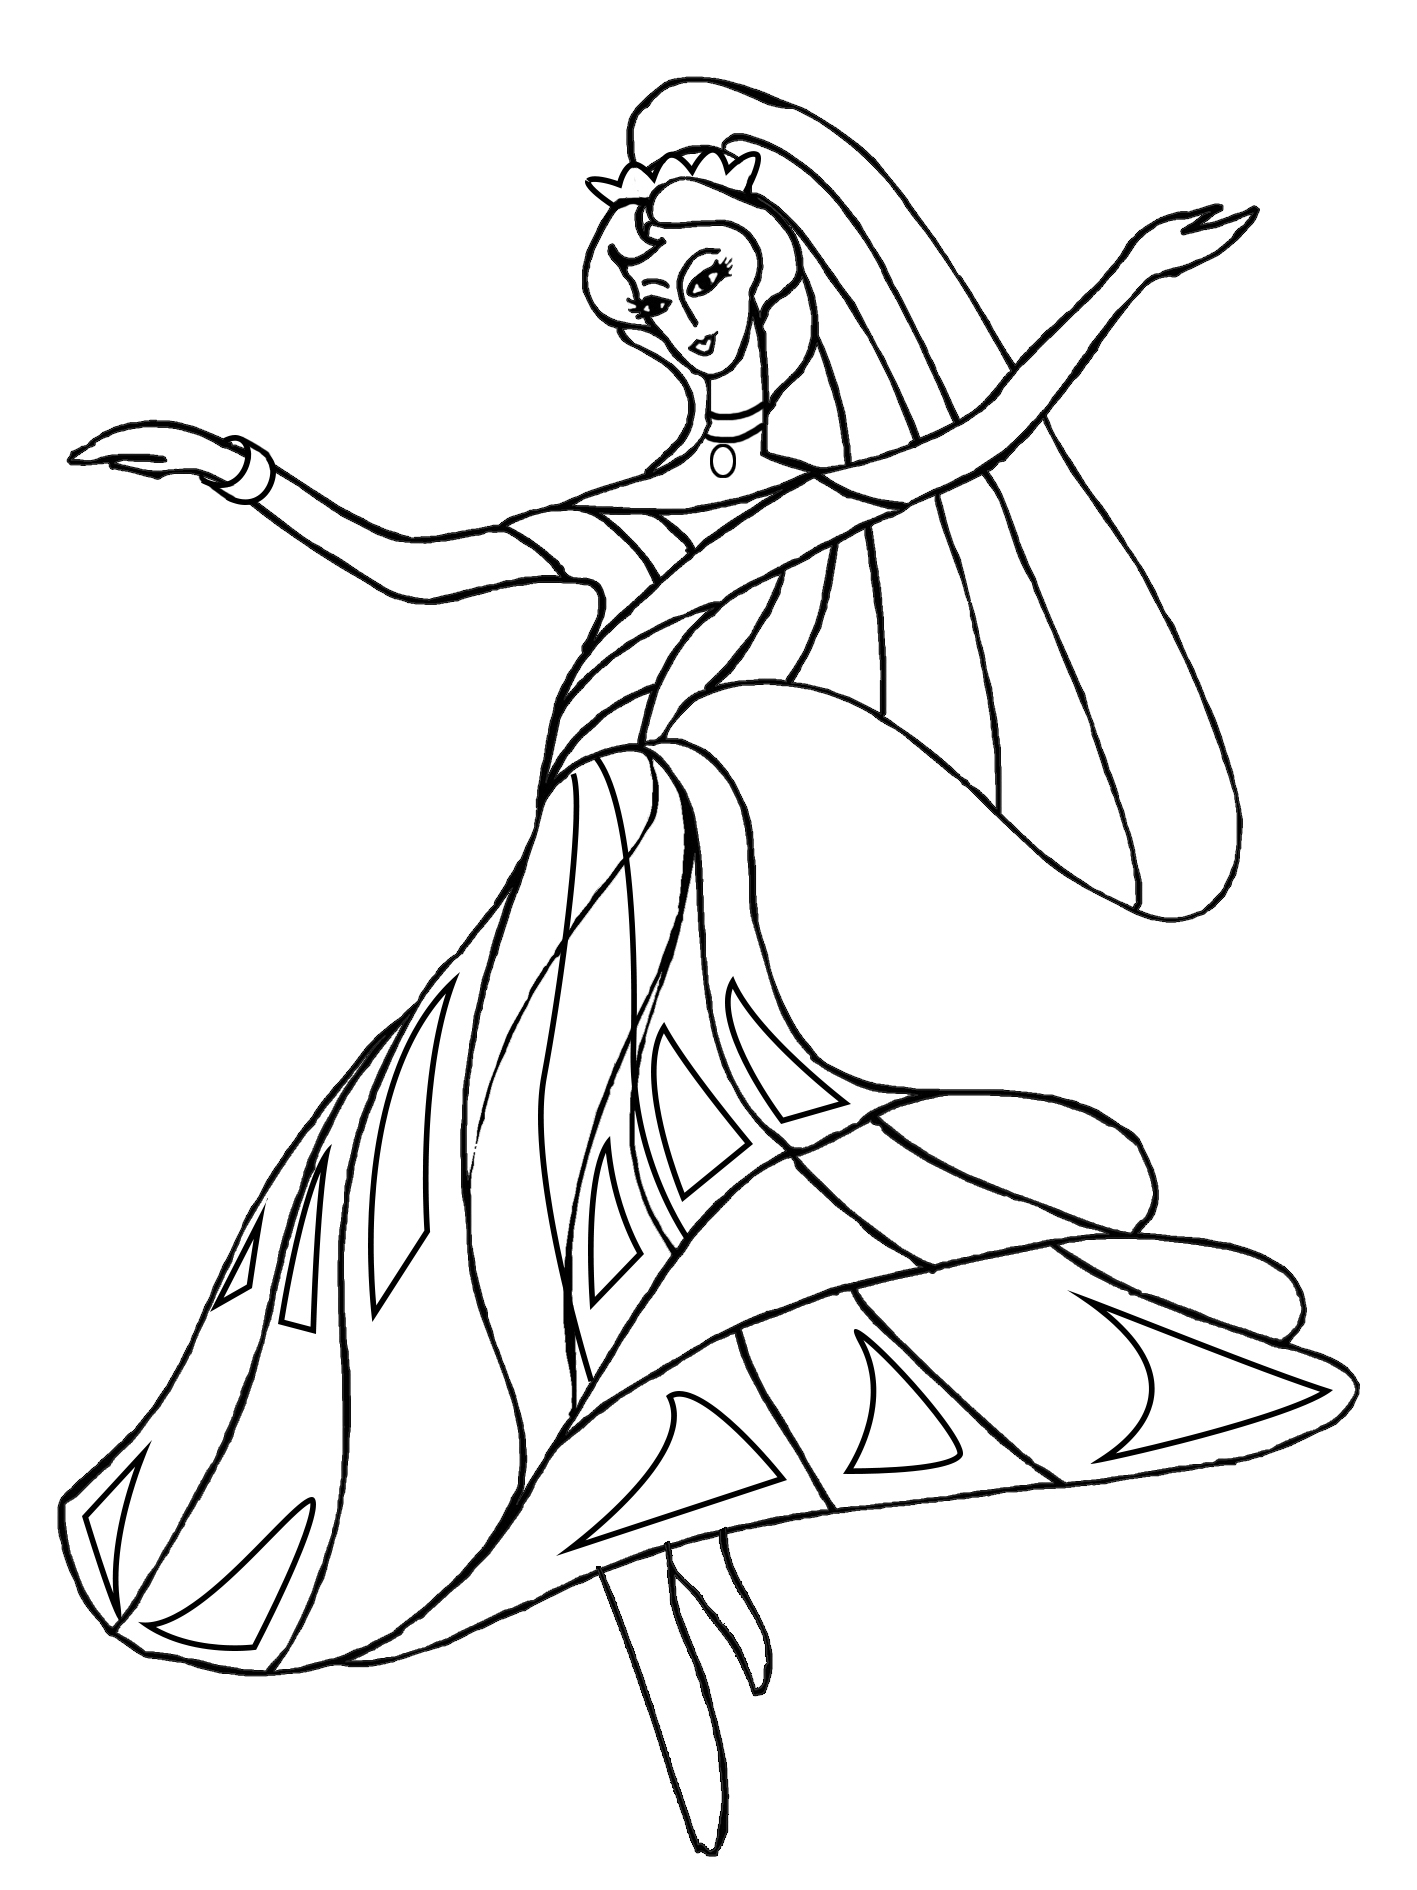 beautiful dancing princess for coloring